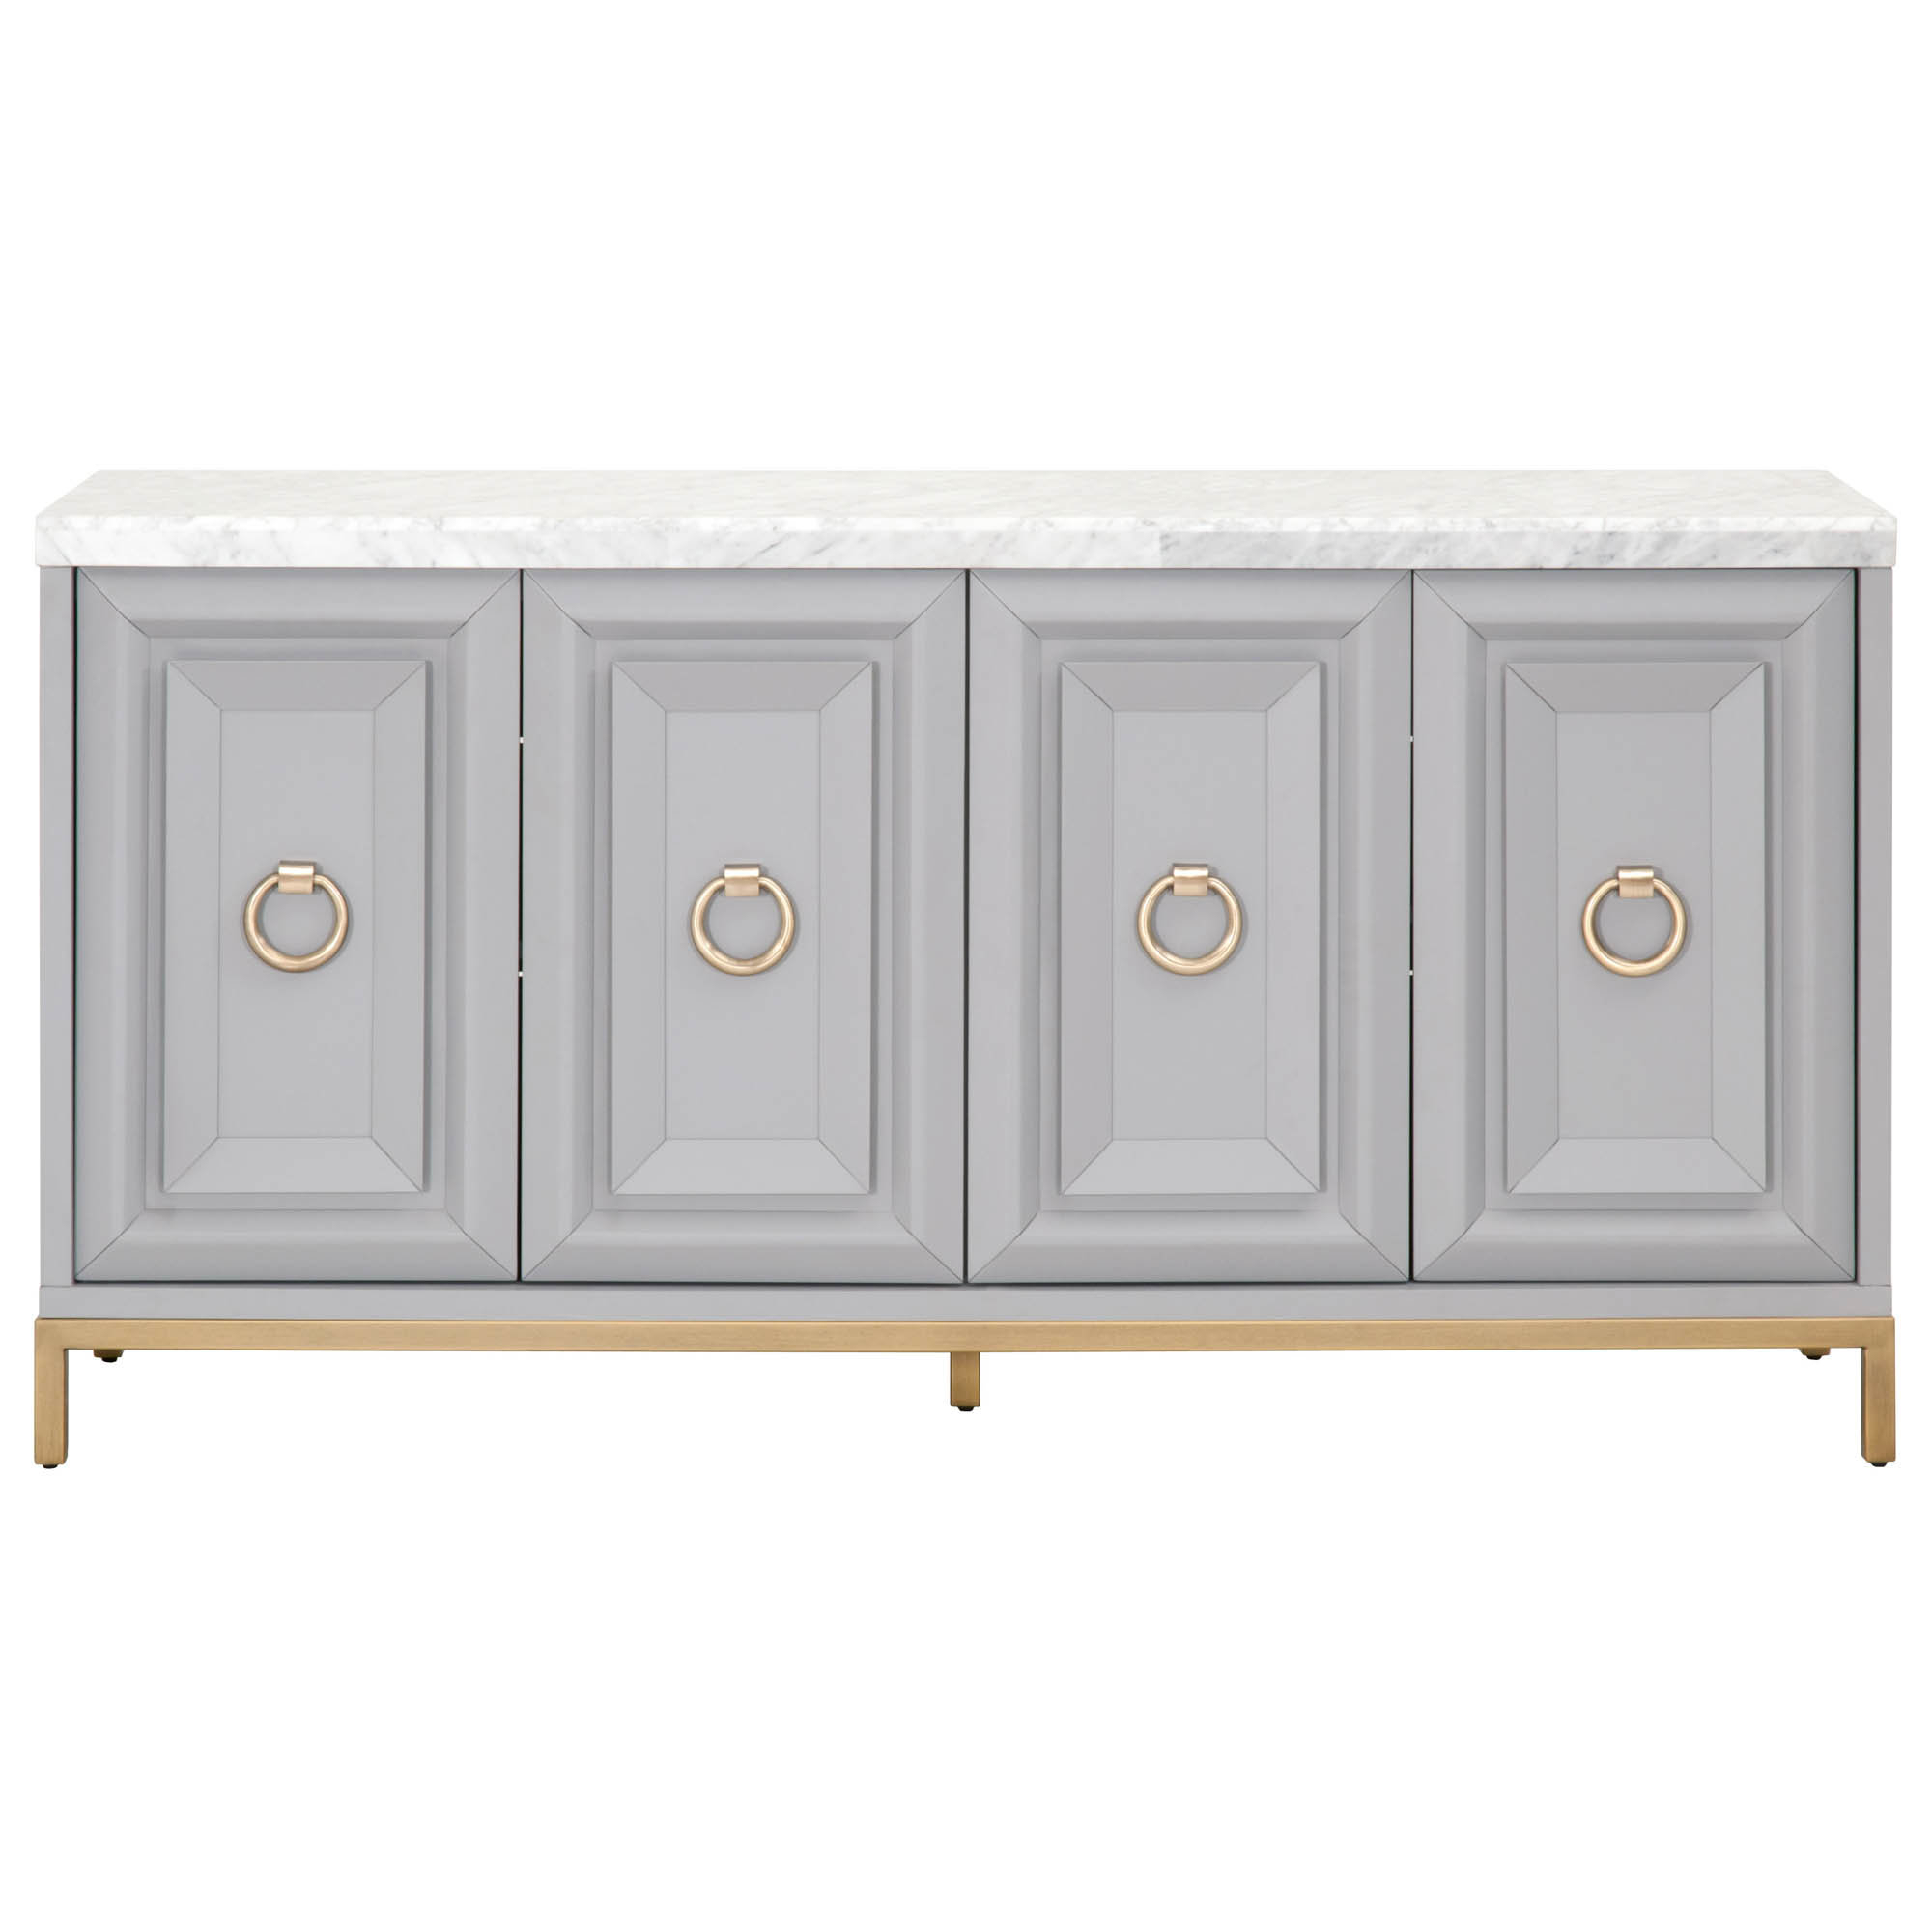 Farmhouse & Rustic Gold Sideboards & Buffets | Birch Lane With Velazco Sideboards (View 11 of 20)